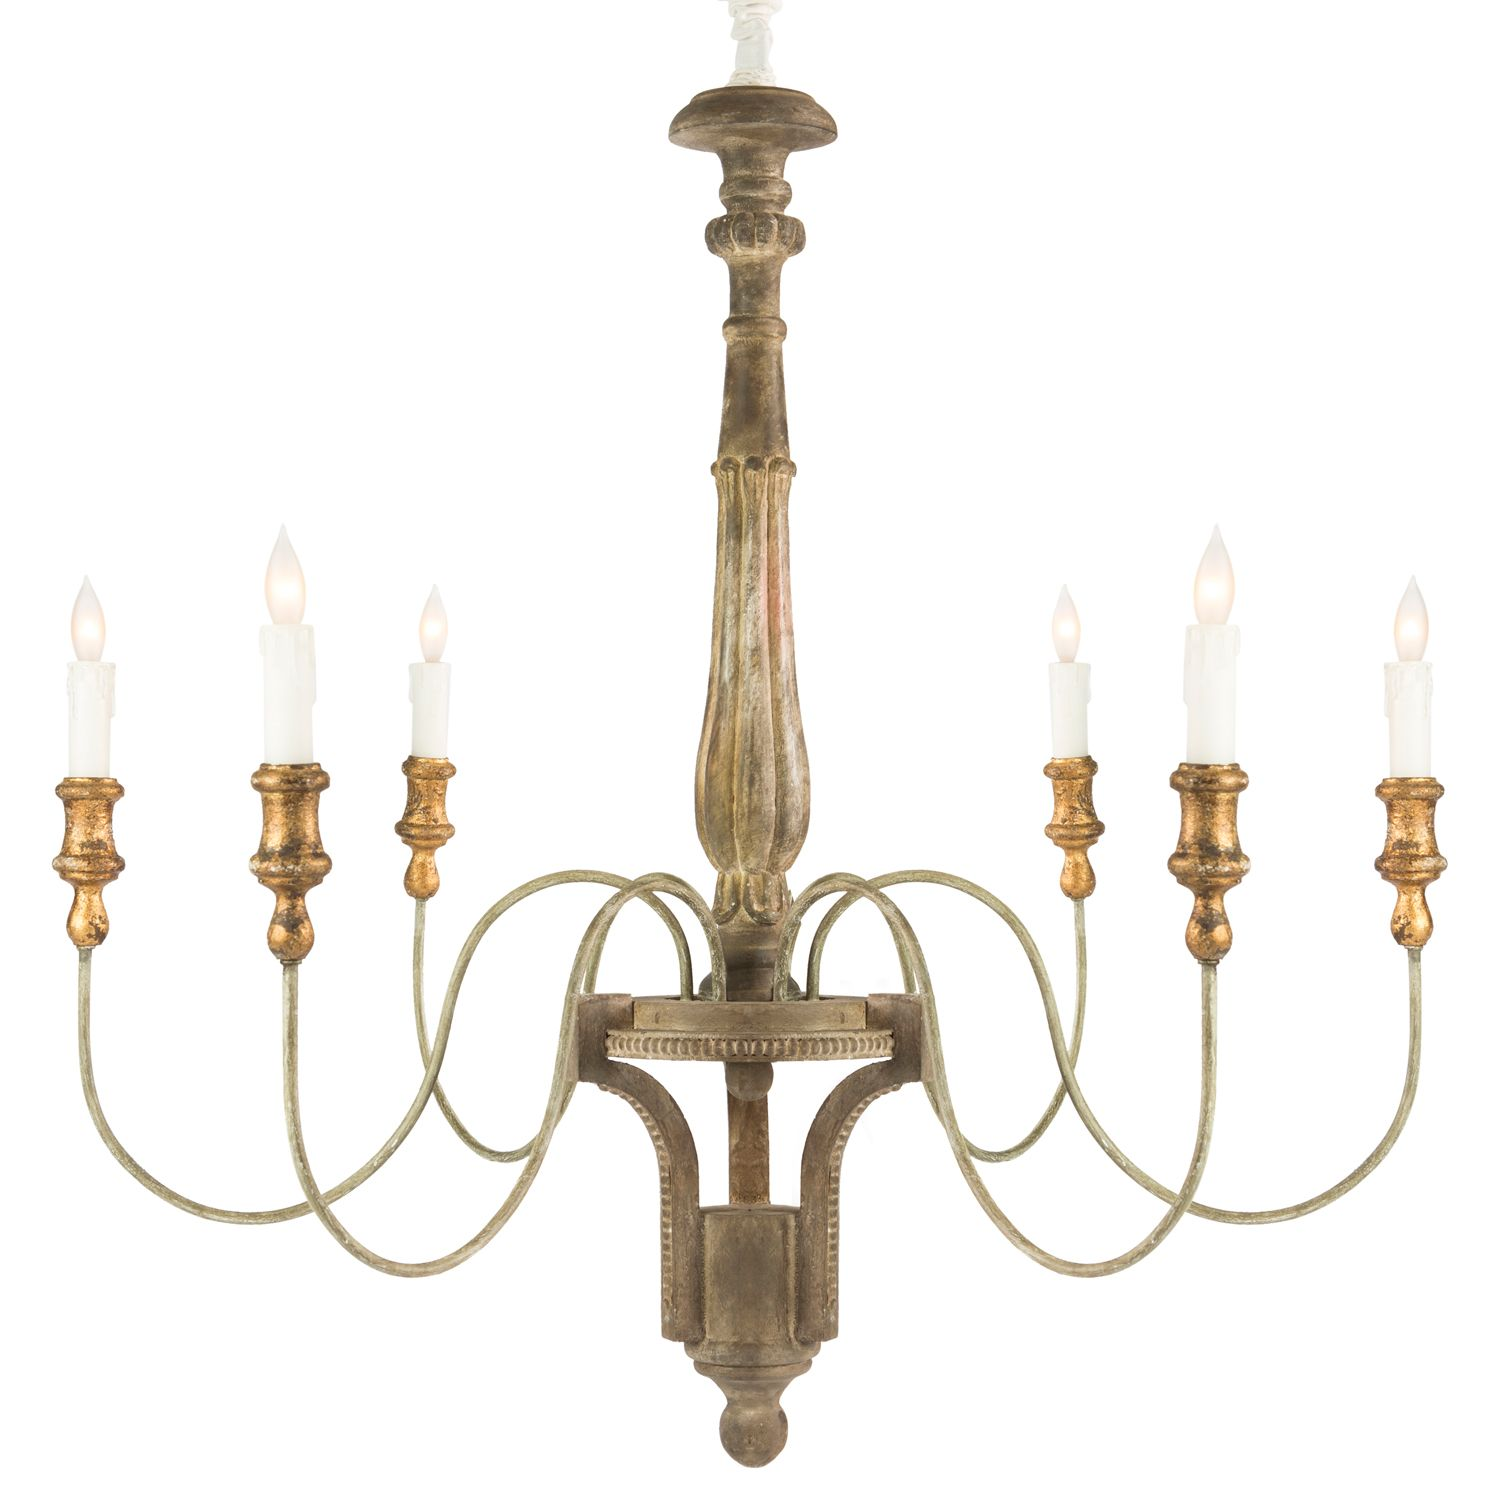 The Aidan Gray Molines chandelier delivers rustic elegance to a